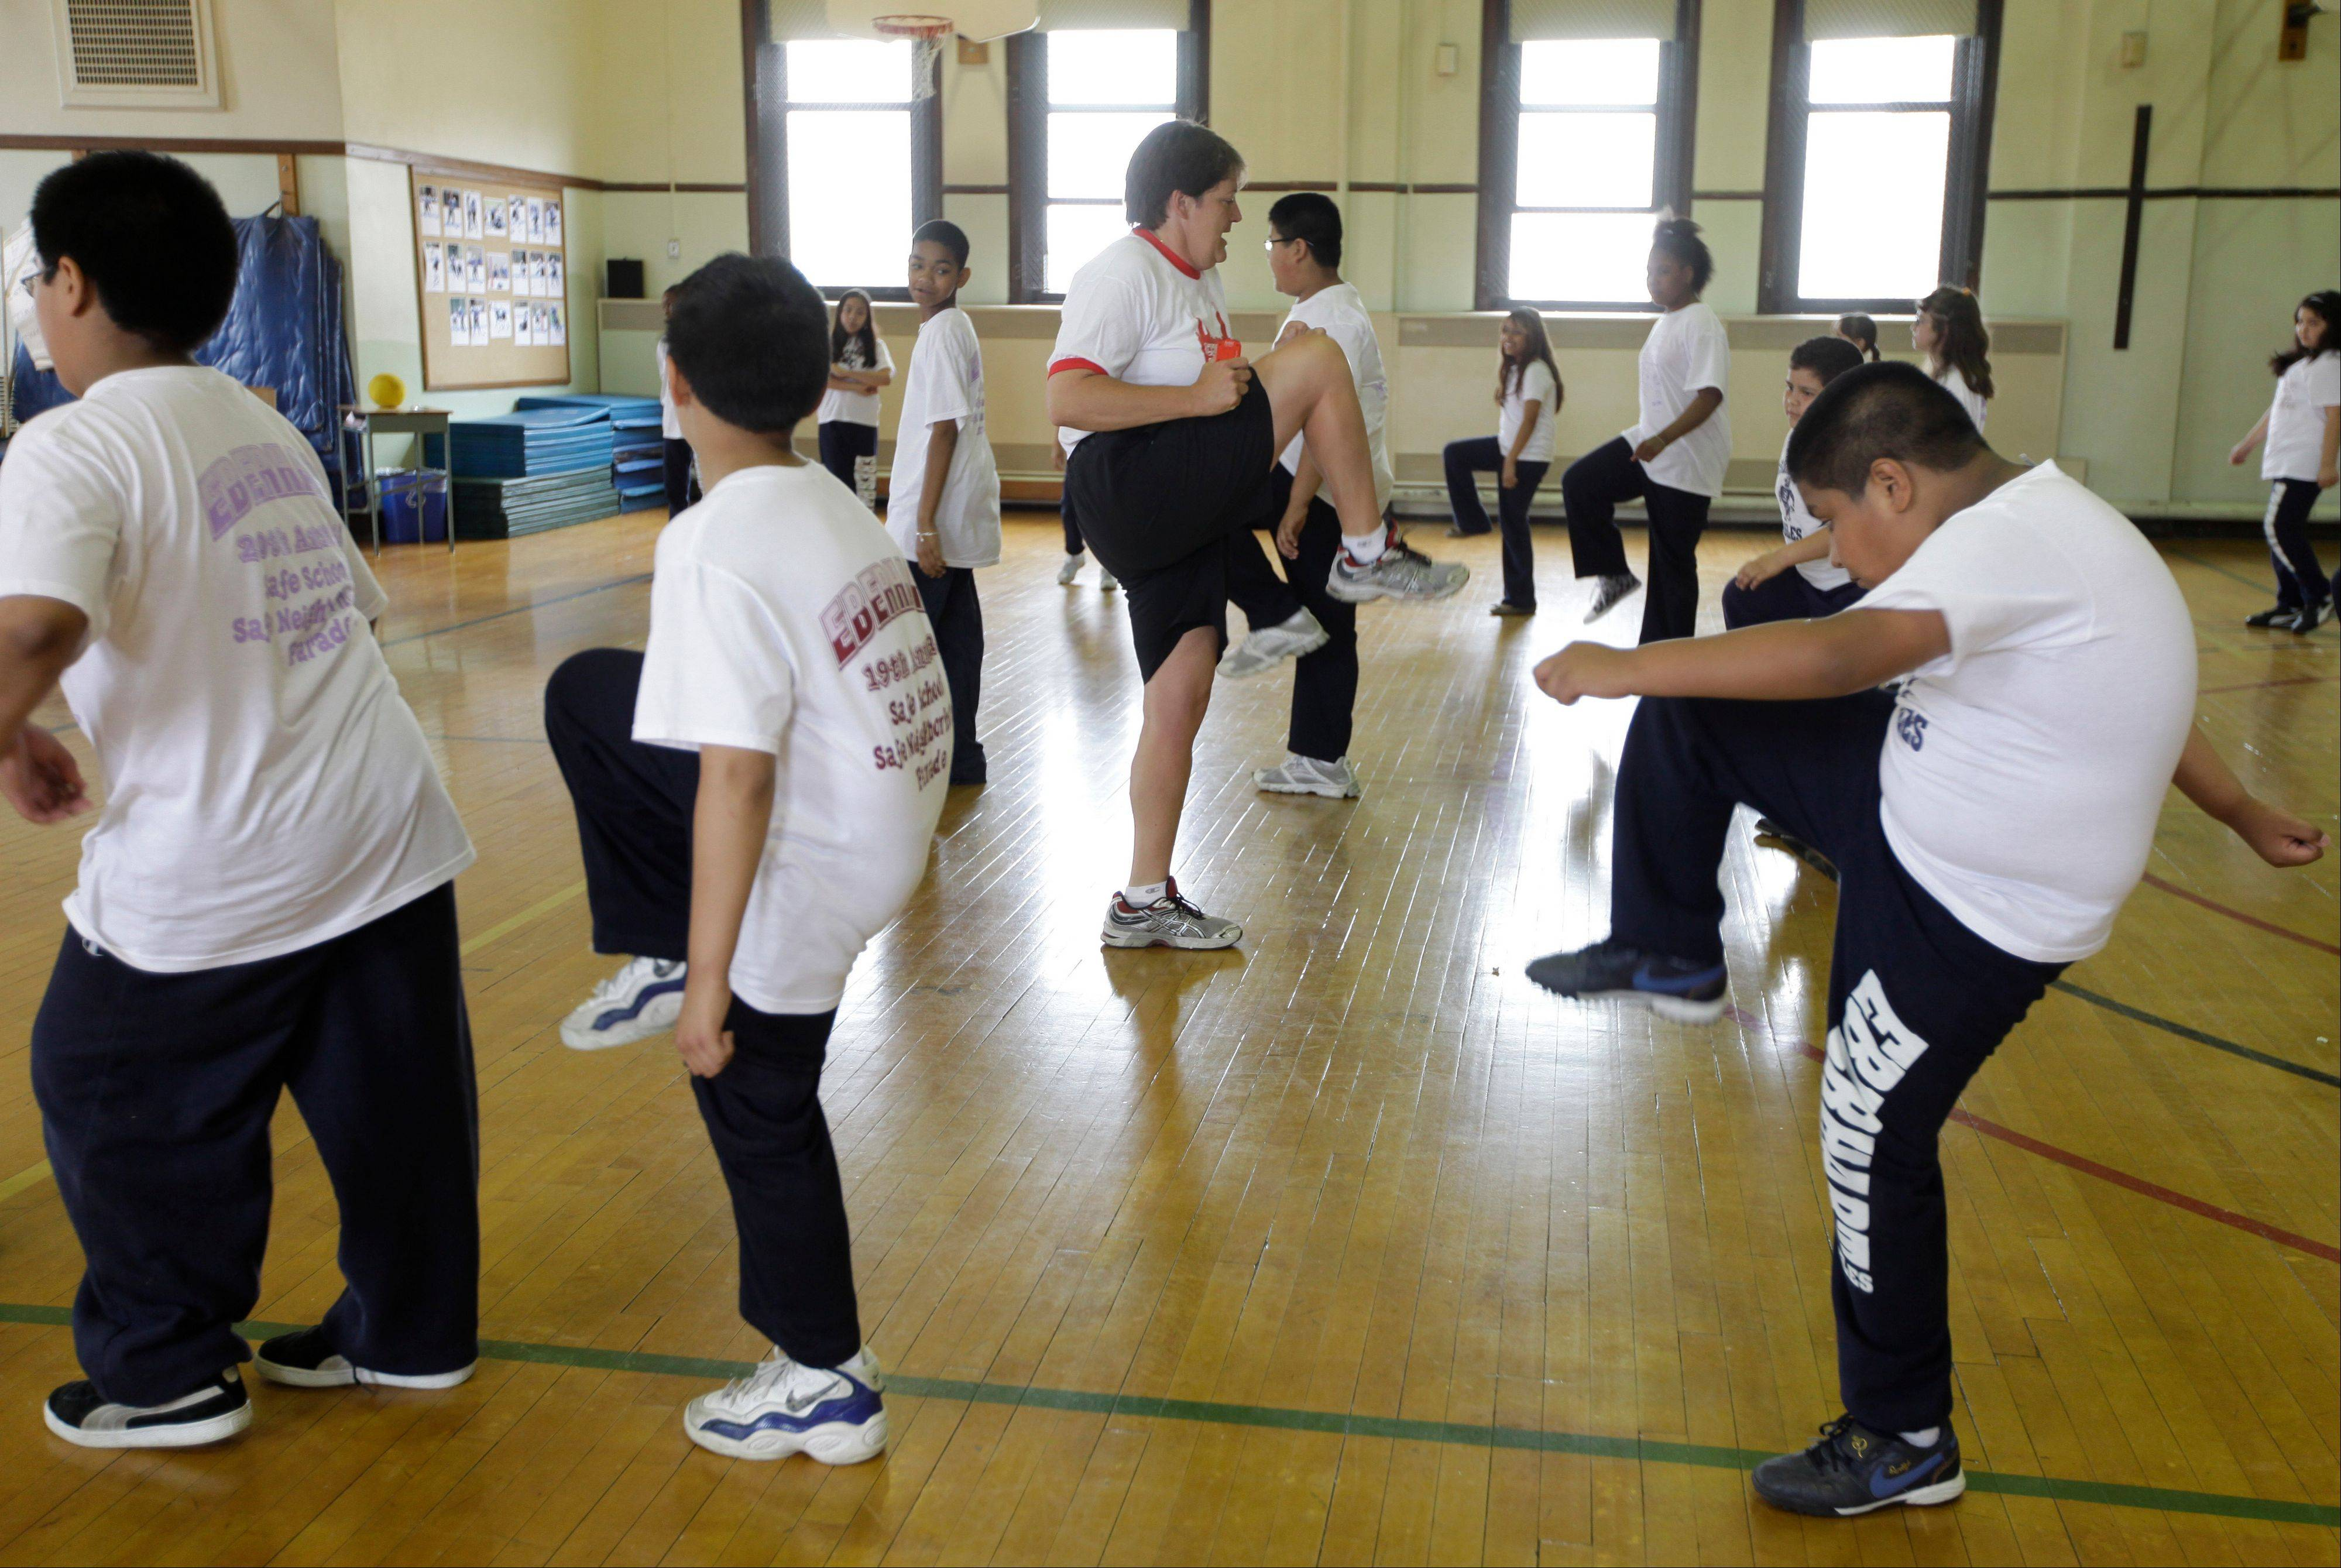 Conventional wisdom says school gym classes make a big difference in kids' weight. But a report in the Thursday's issue of the New England Journal of Medicine says gym classes often are not long, often or intense enough to make much difference.